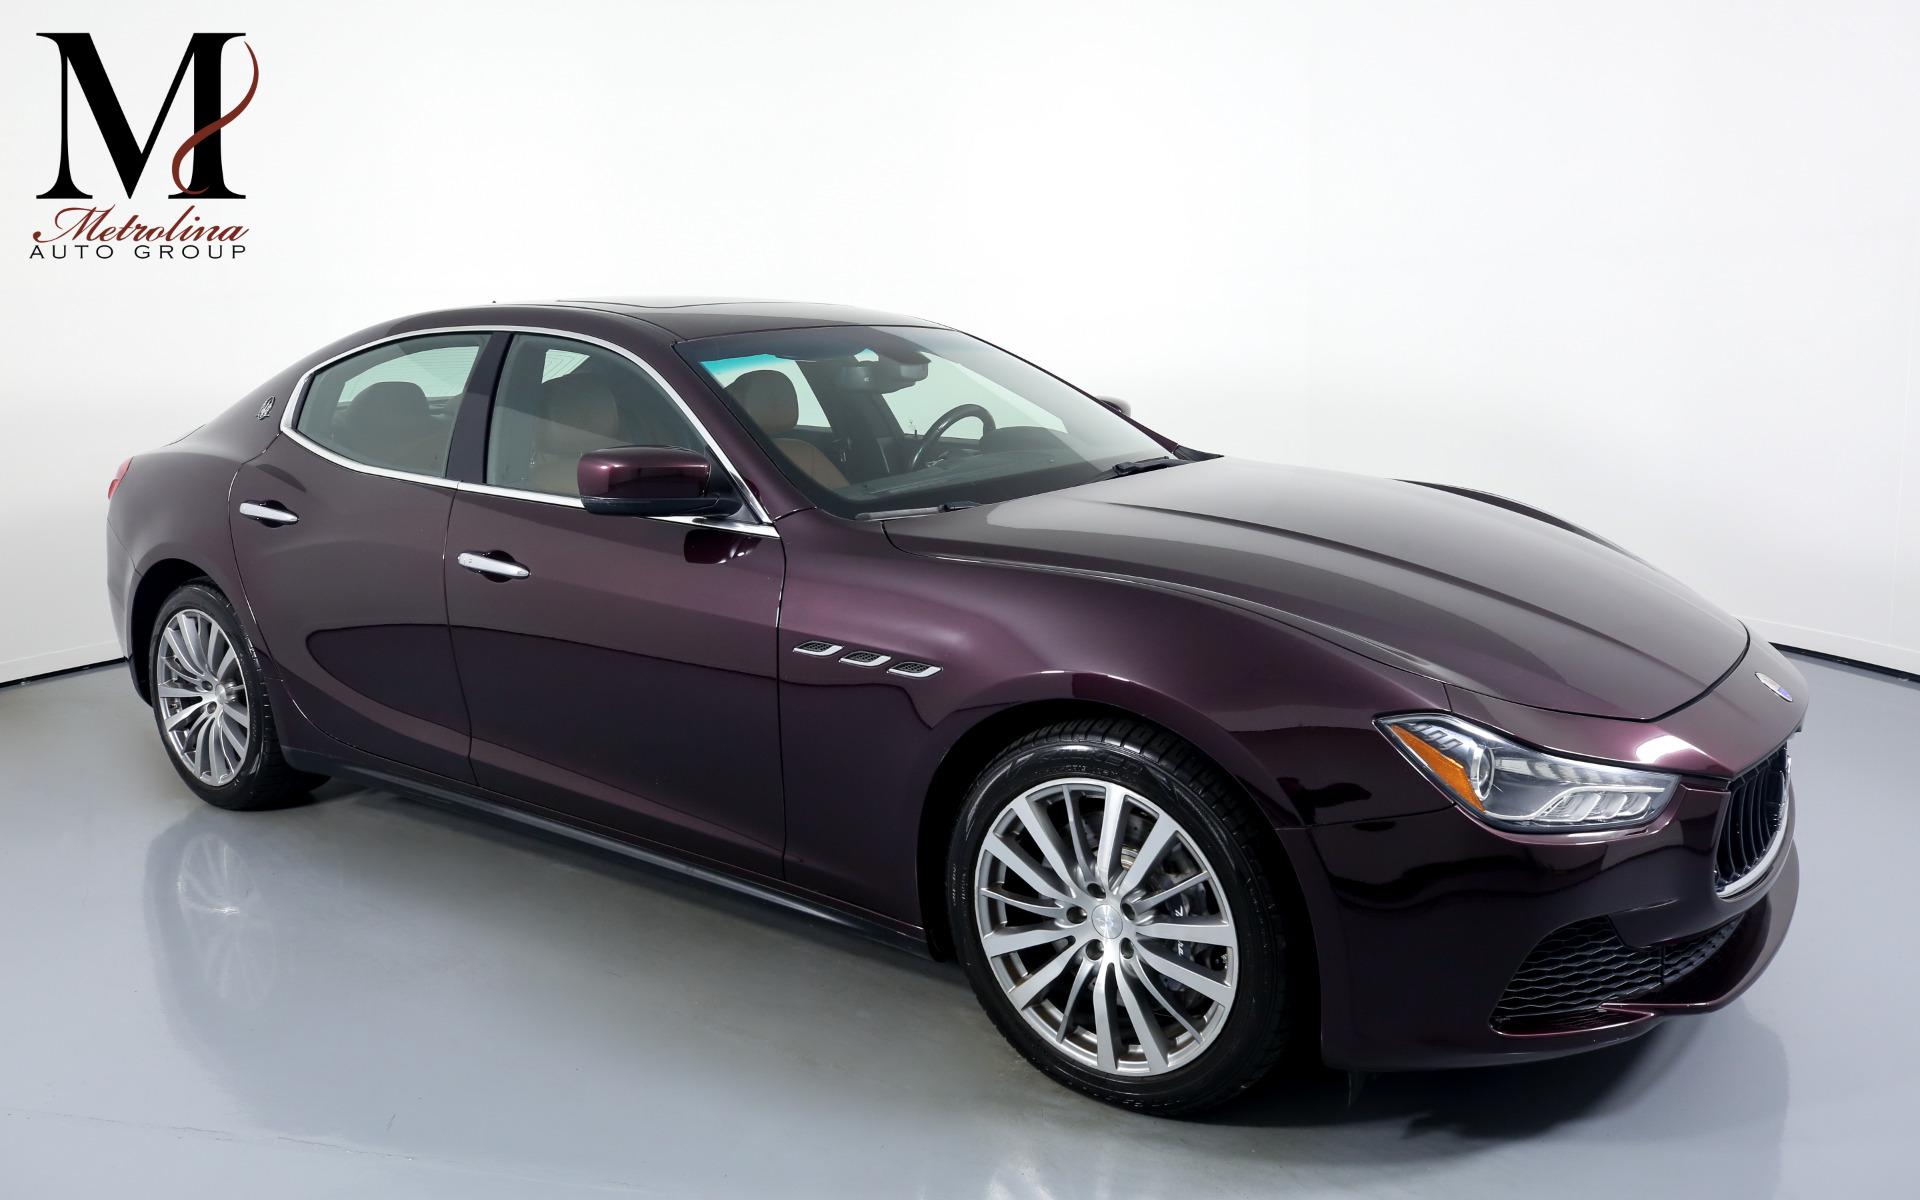 Used 2015 Maserati Ghibli S Q4 for sale Call for price at Metrolina Auto Group in Charlotte NC 28217 - 1